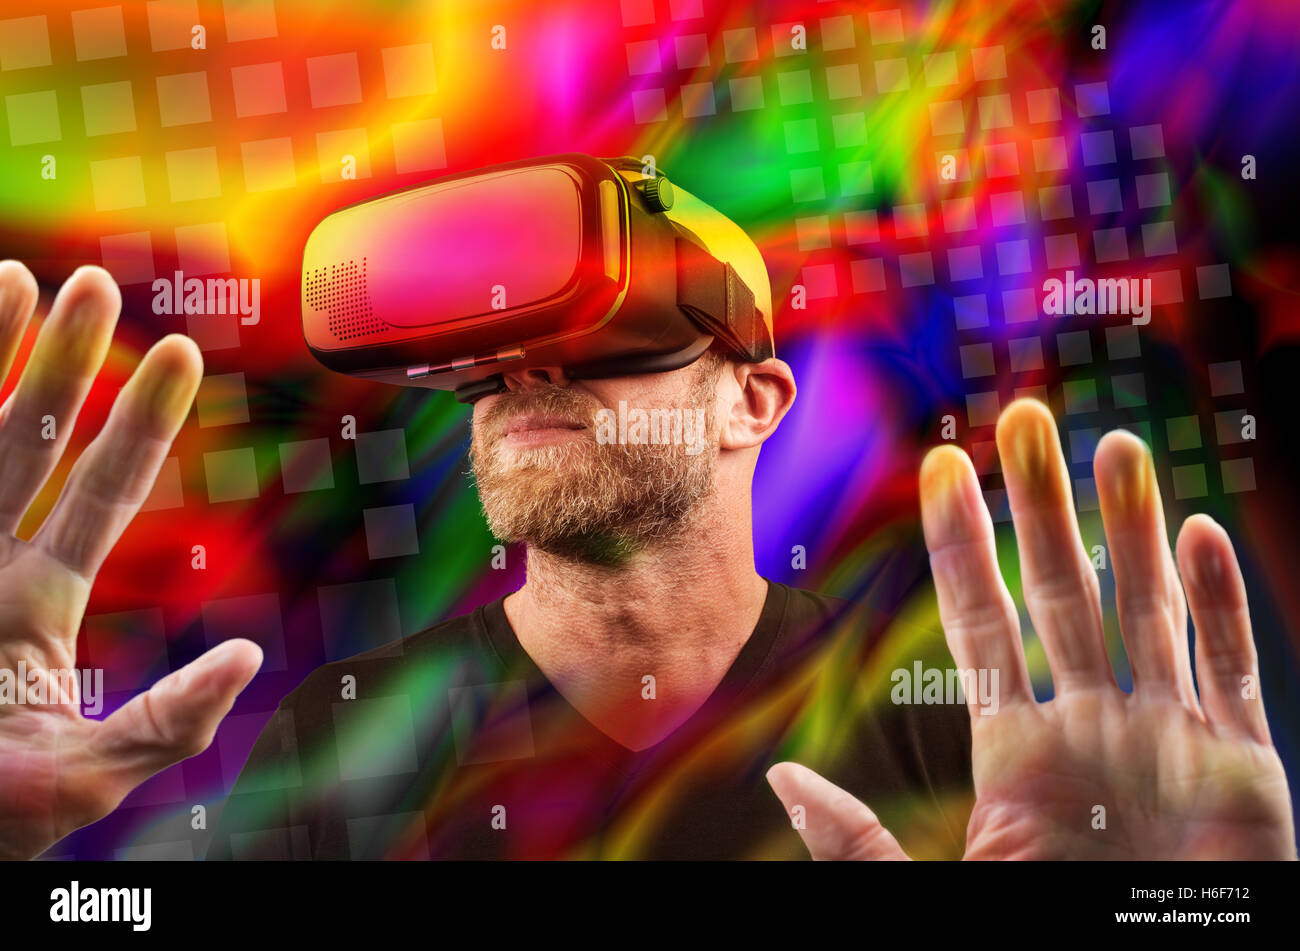 Man wearing VR headset and touching something with his hands (montage) - Stock Image